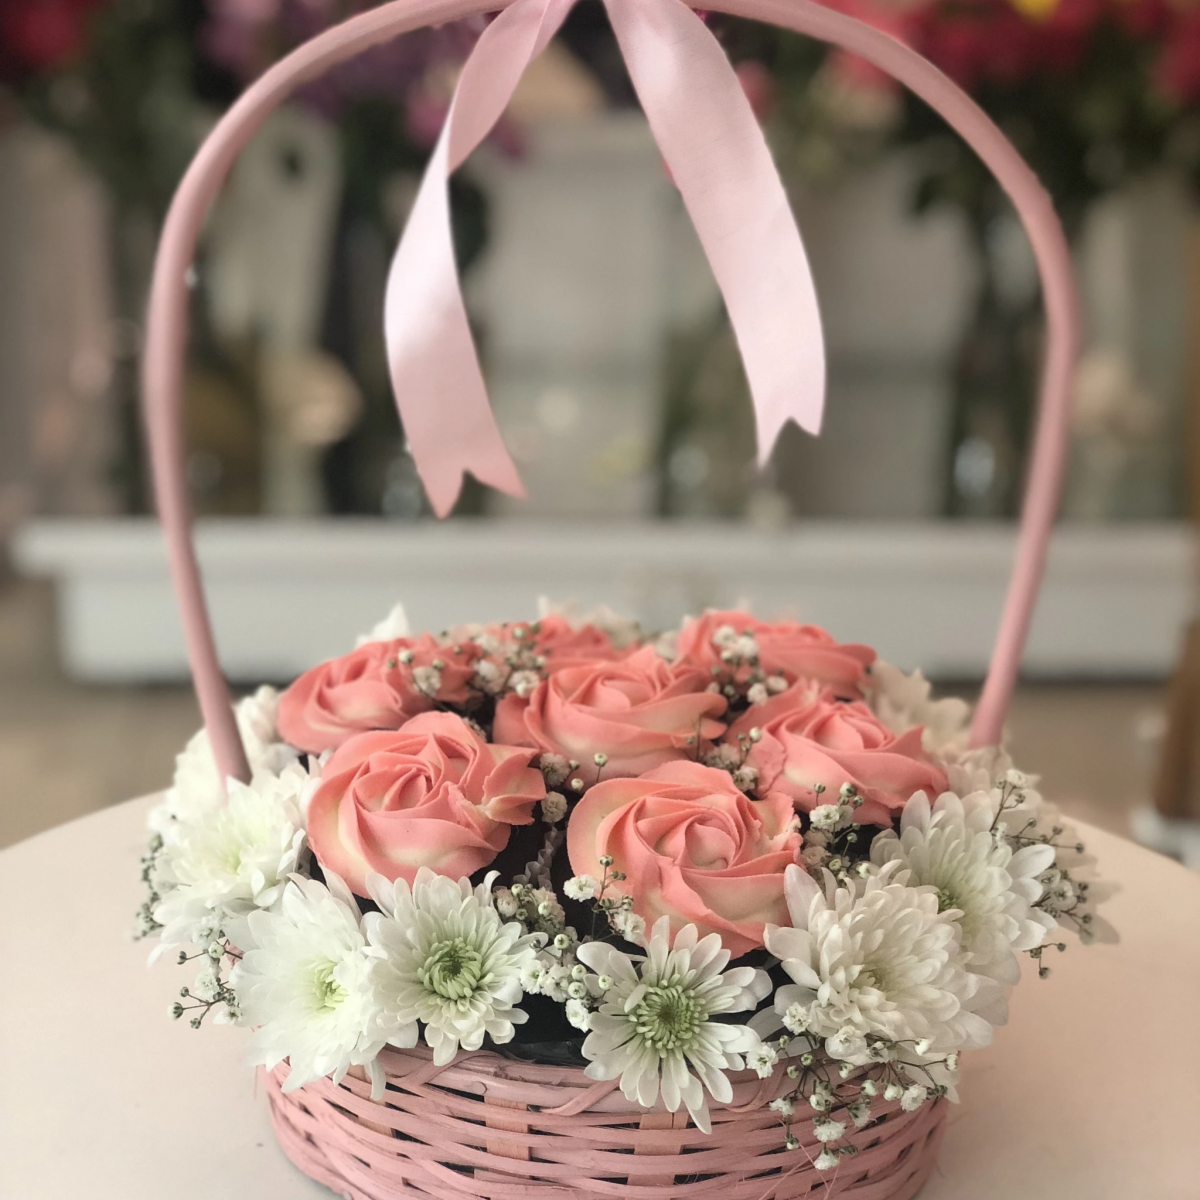 Delivery of A Basket of Love on Father's Day